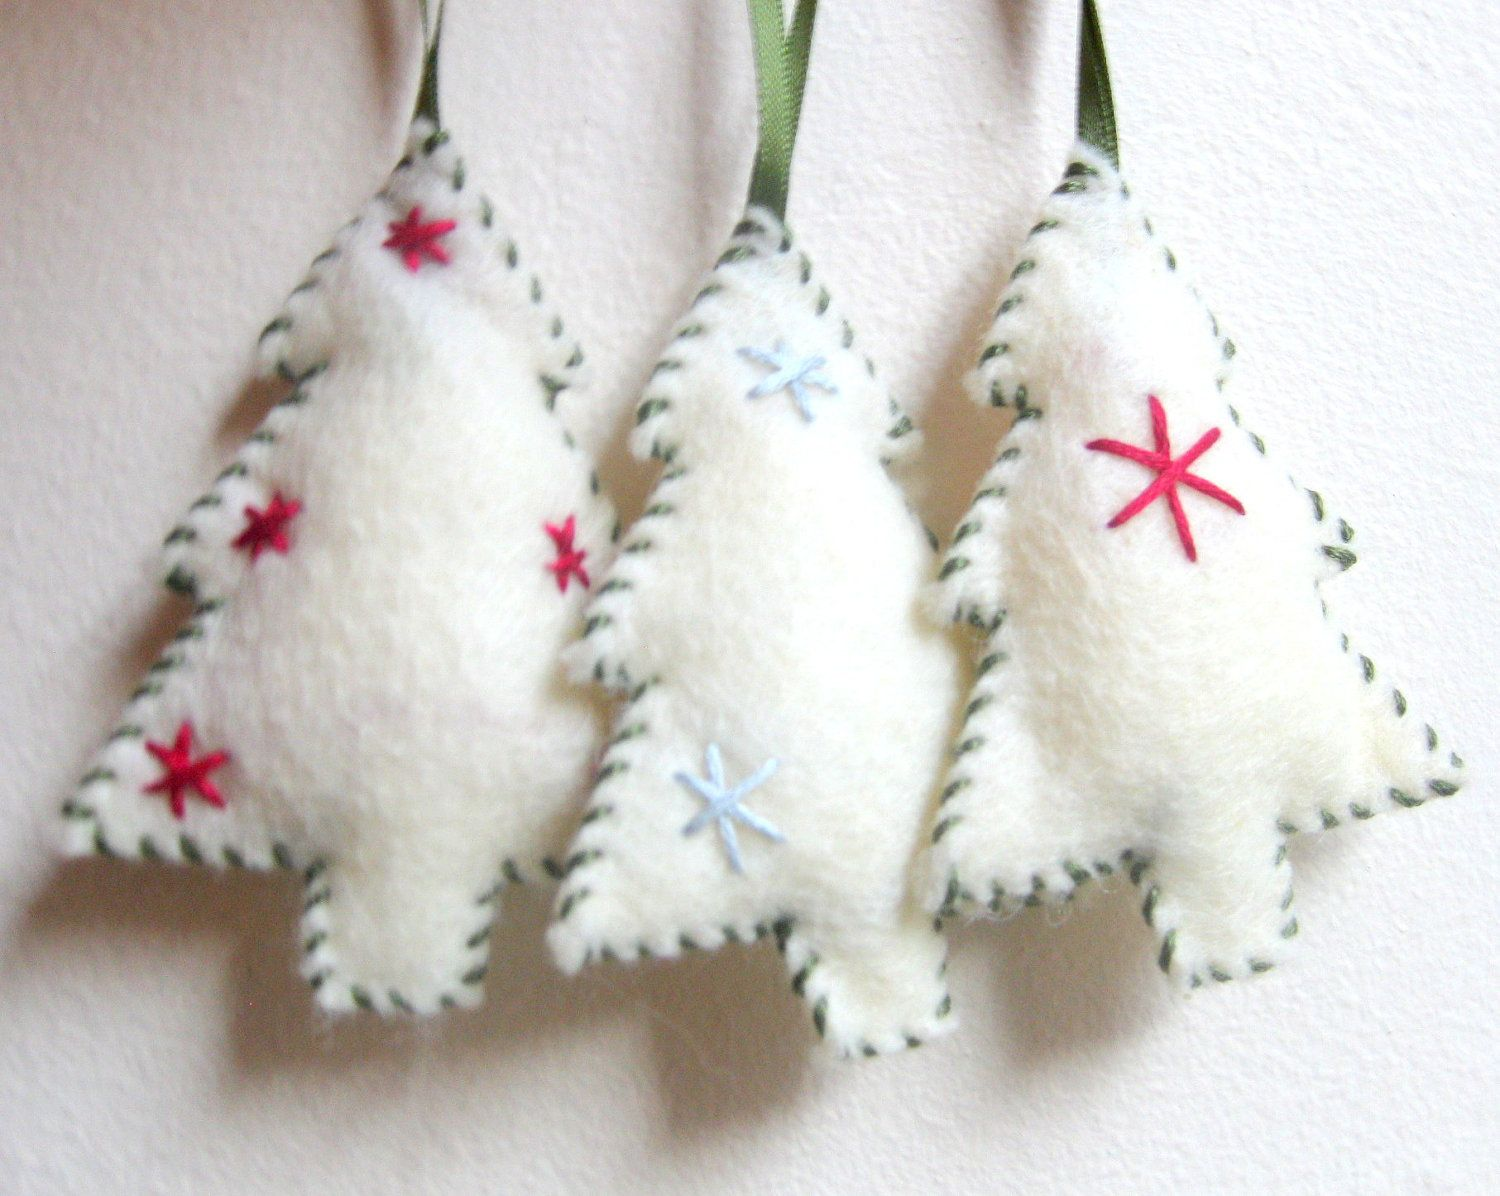 Felt ornament Christmas tree done in white with red trim to cute